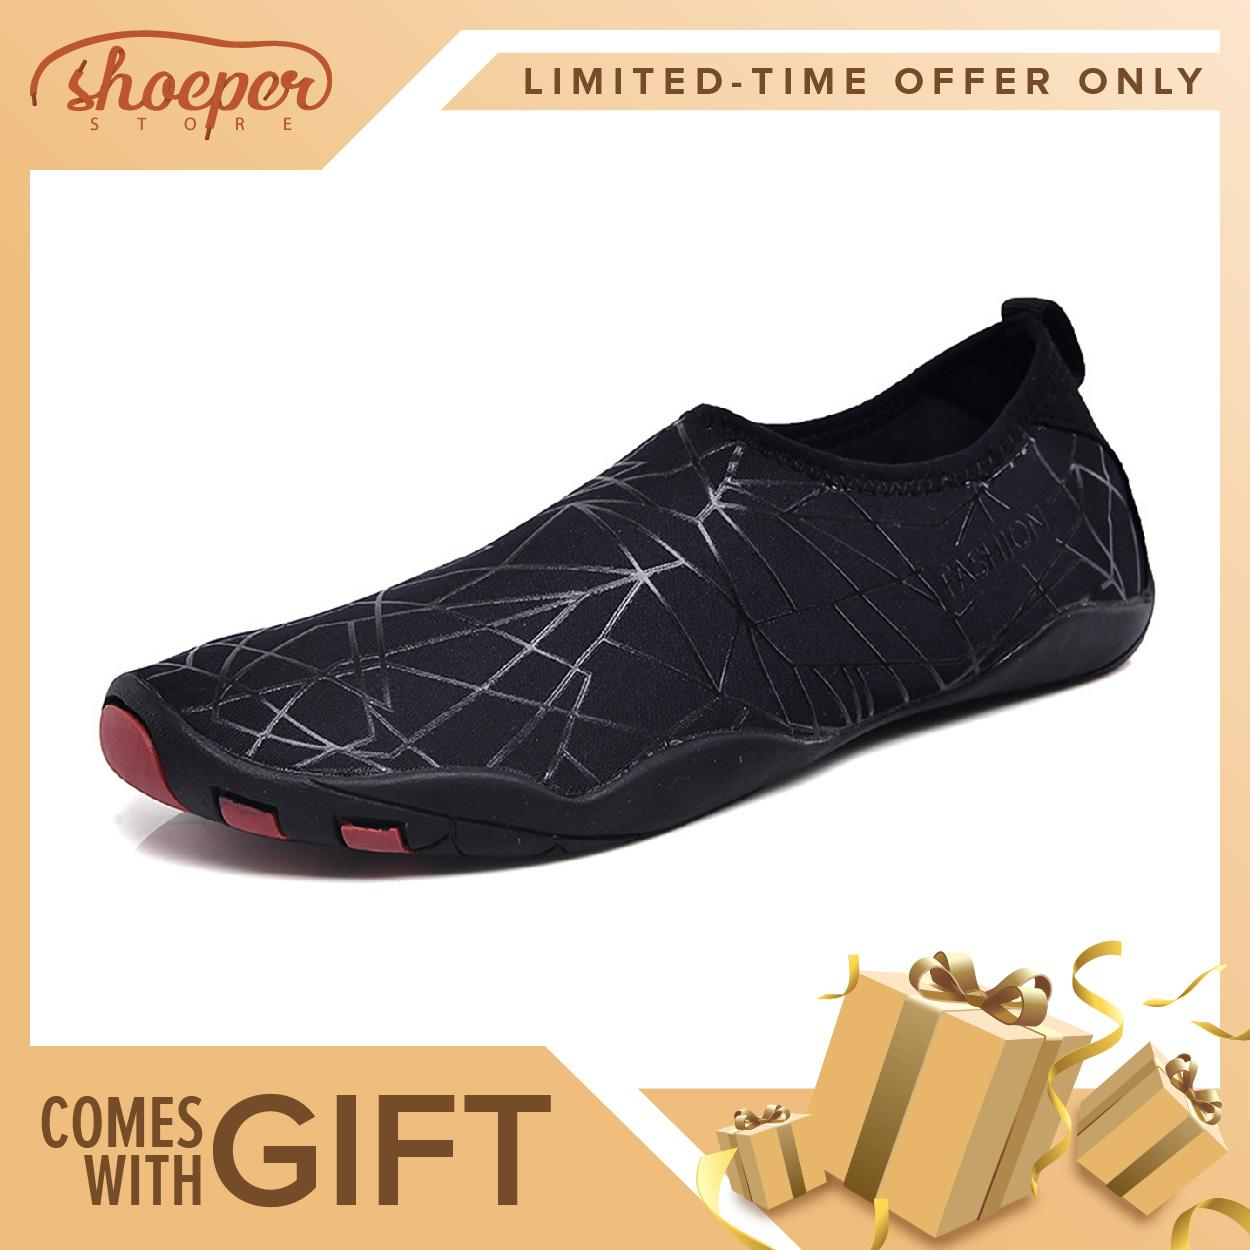 Shoeper Jxs-1 Swimming Shoes For Men & Women Beach Summer Footwear Affordable Water Shoes Slip-On Easy To Wear Sports Shoes For Under Water Activities By Shoeper Store.